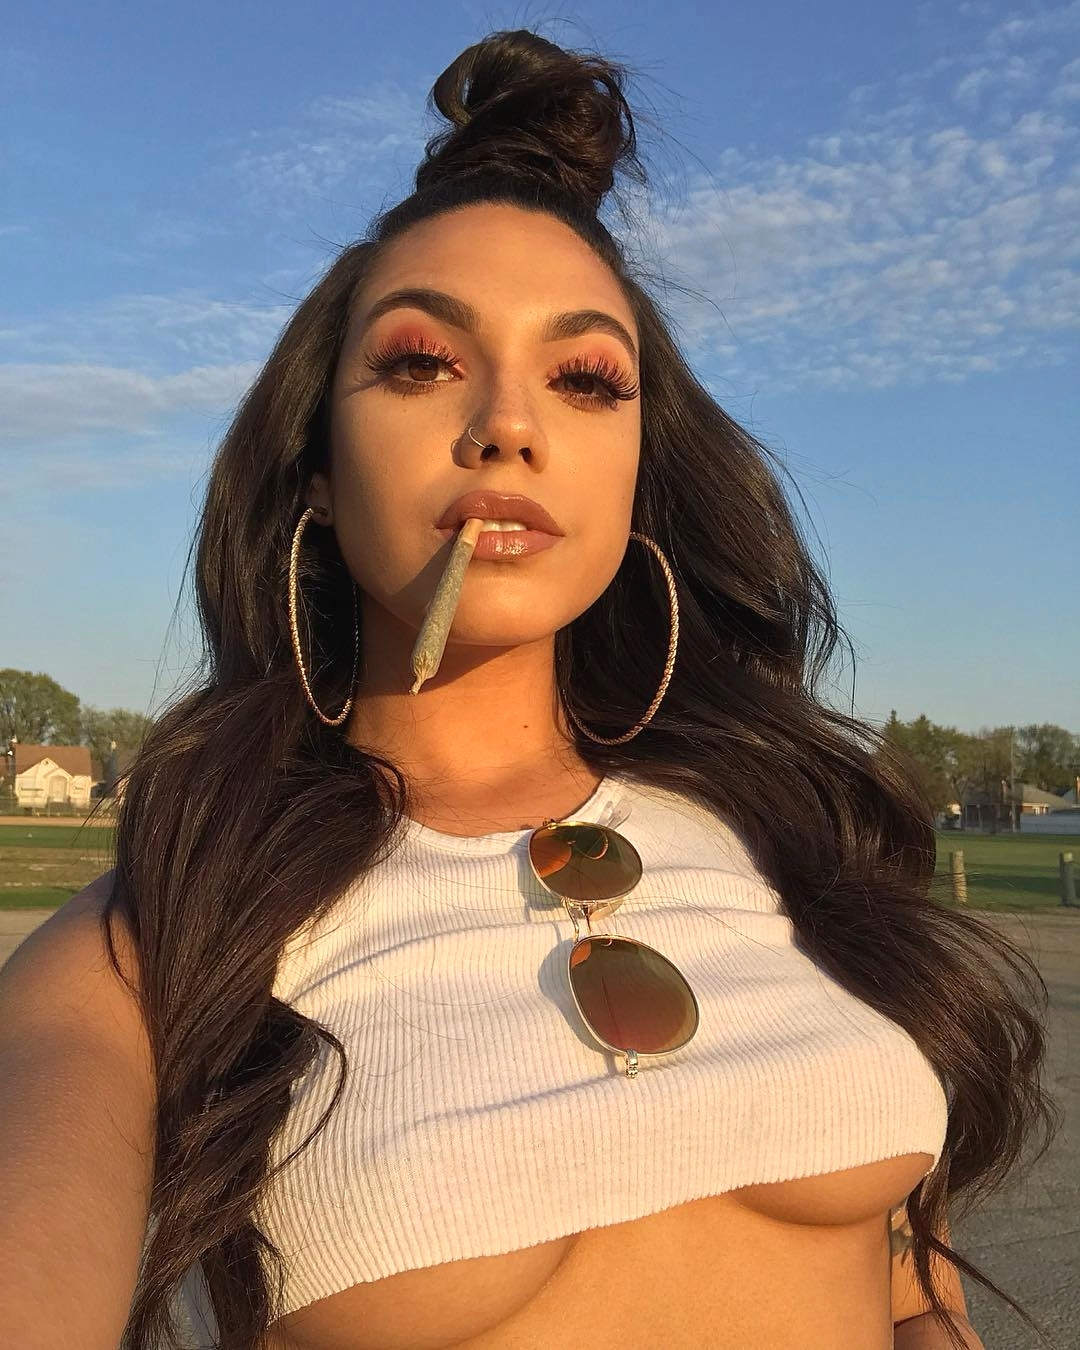 cannabis babe with blunt and halter top